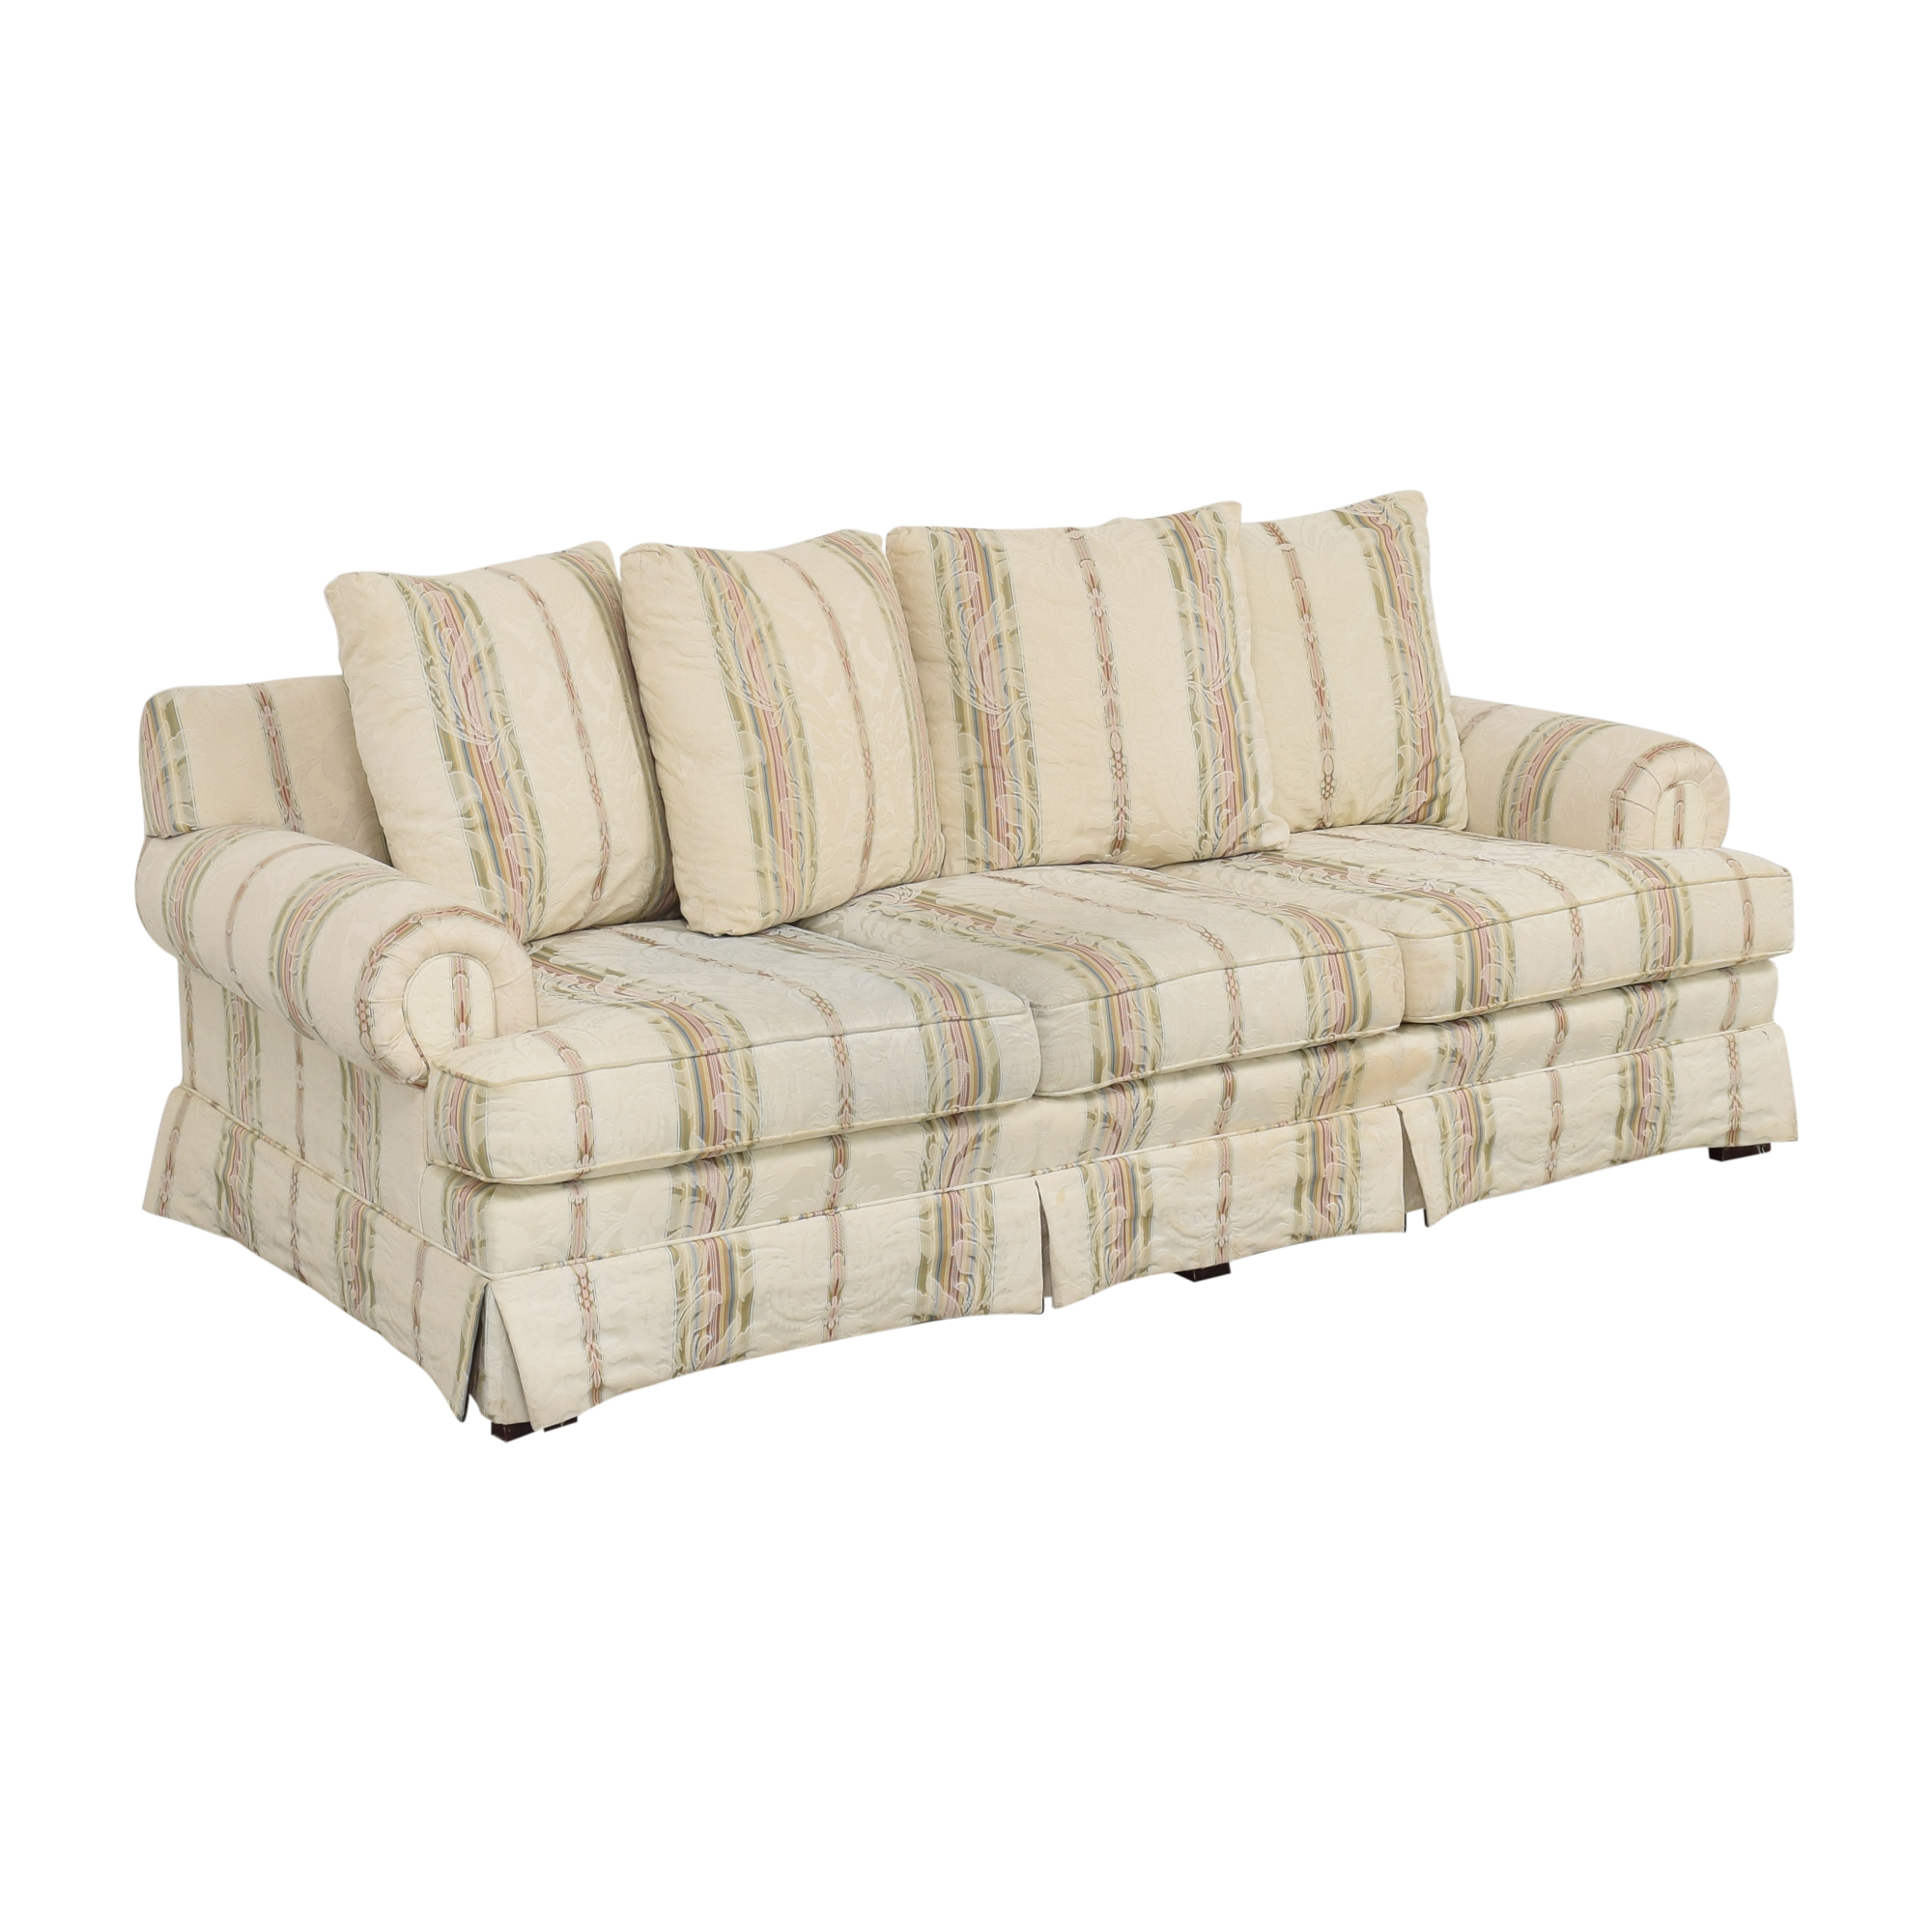 buy Broyhill Furniture Layered Pillow Sofa Broyhill Furniture